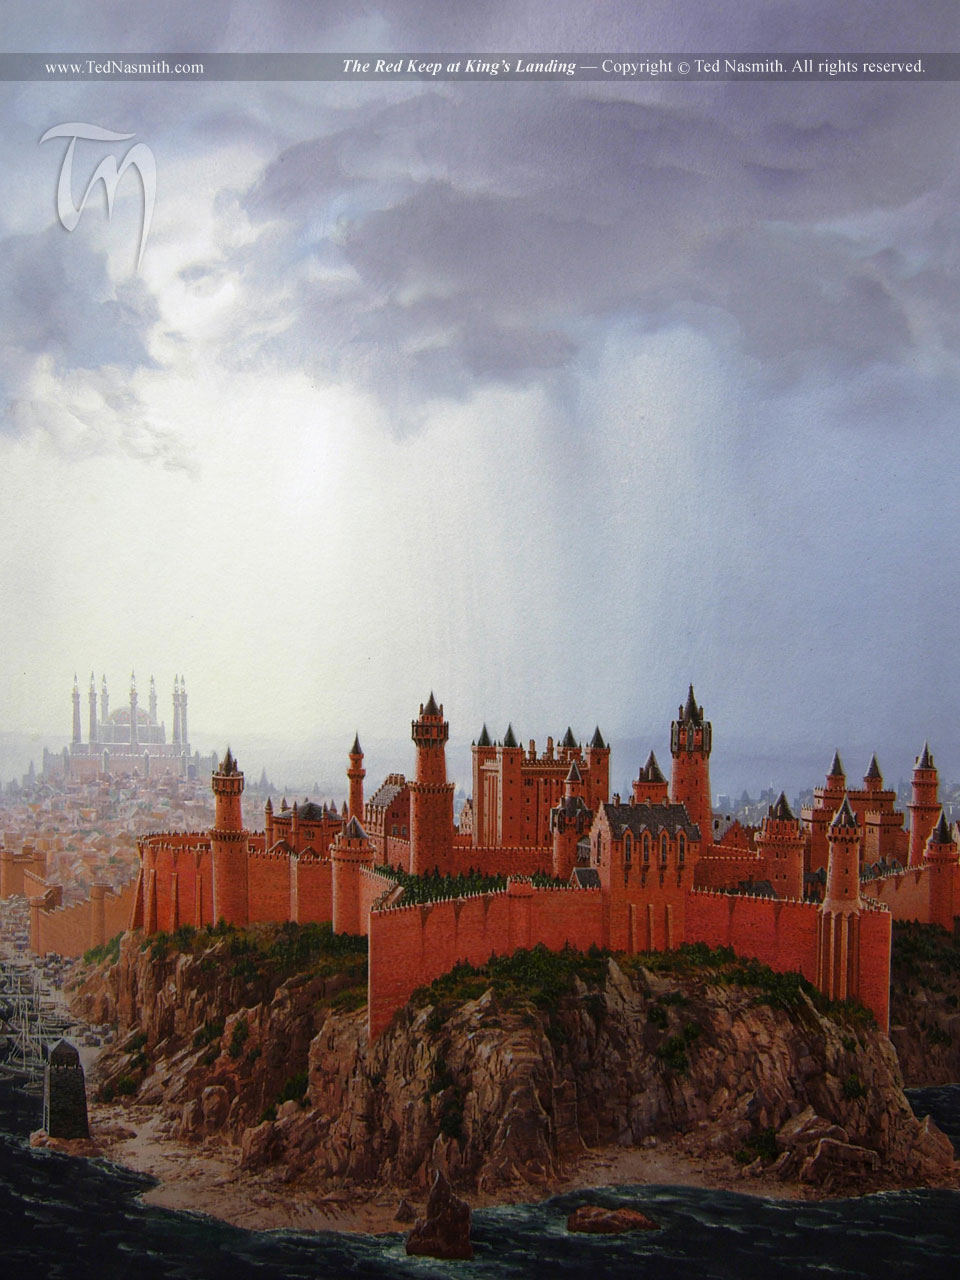 Kings landing red keep song of ice and fire